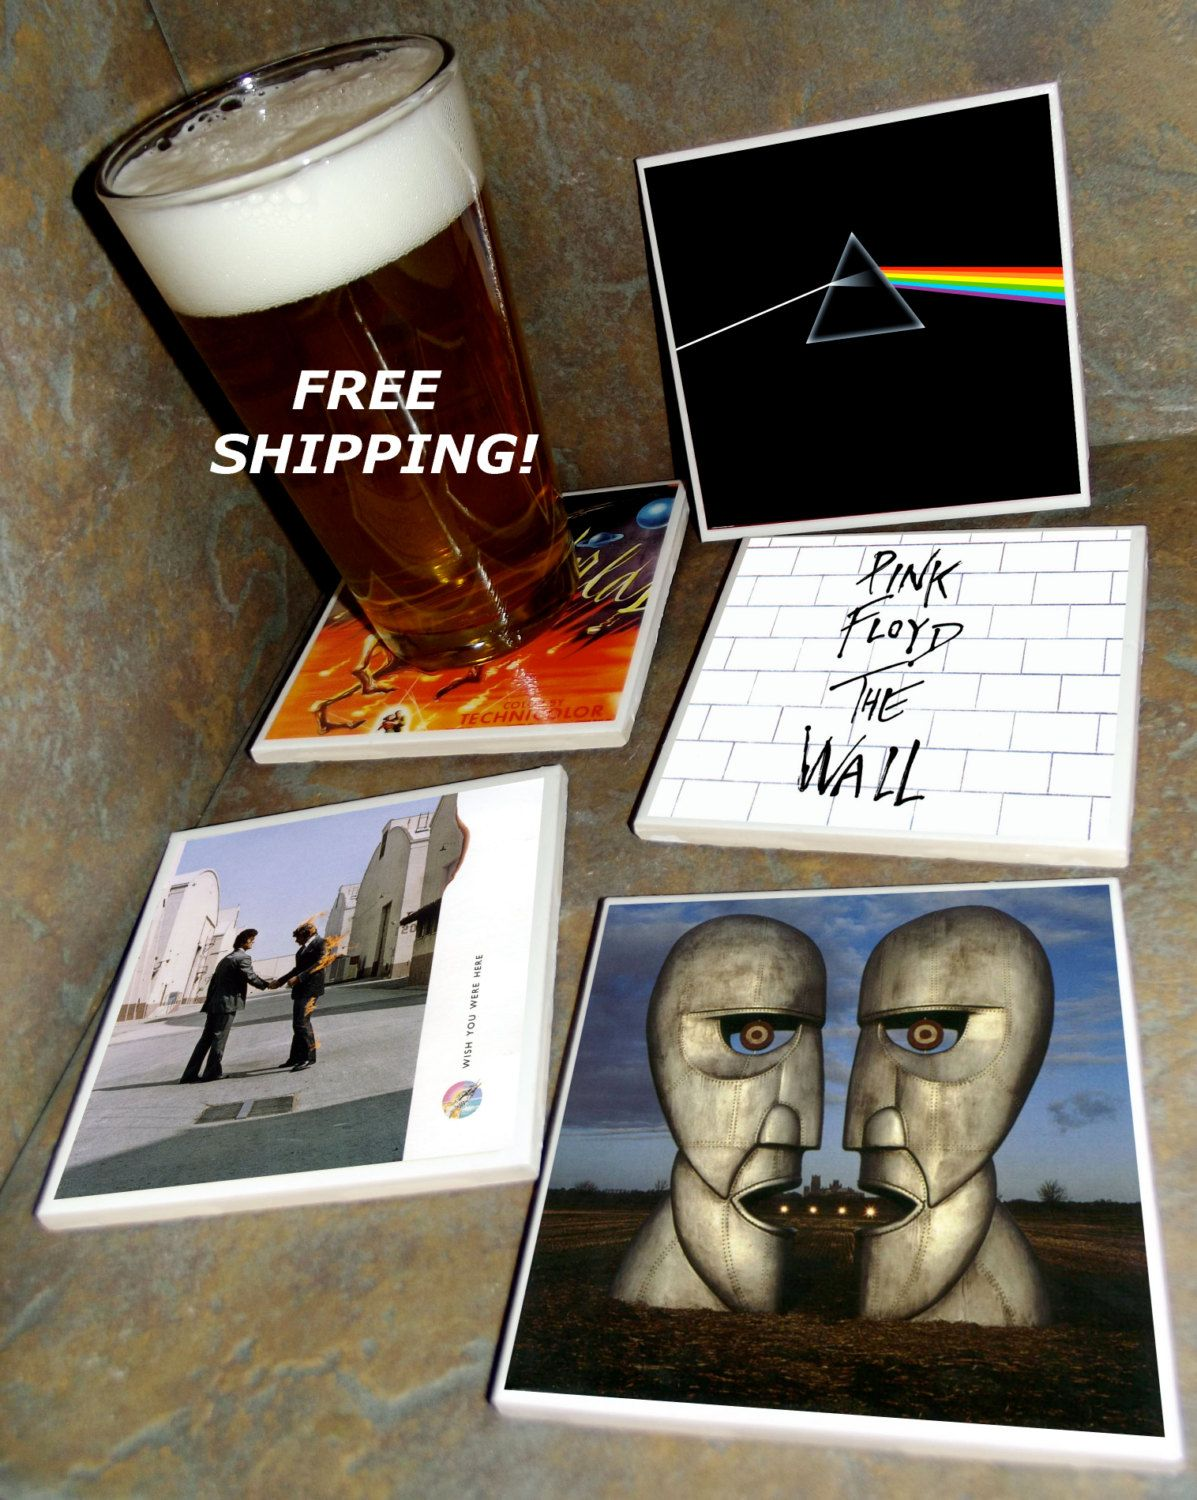 Pink floyd ceramic tile album covers coasters set of 4 free pink floyd ceramic tile album covers coasters set of 4 free shipping dark side dailygadgetfo Choice Image